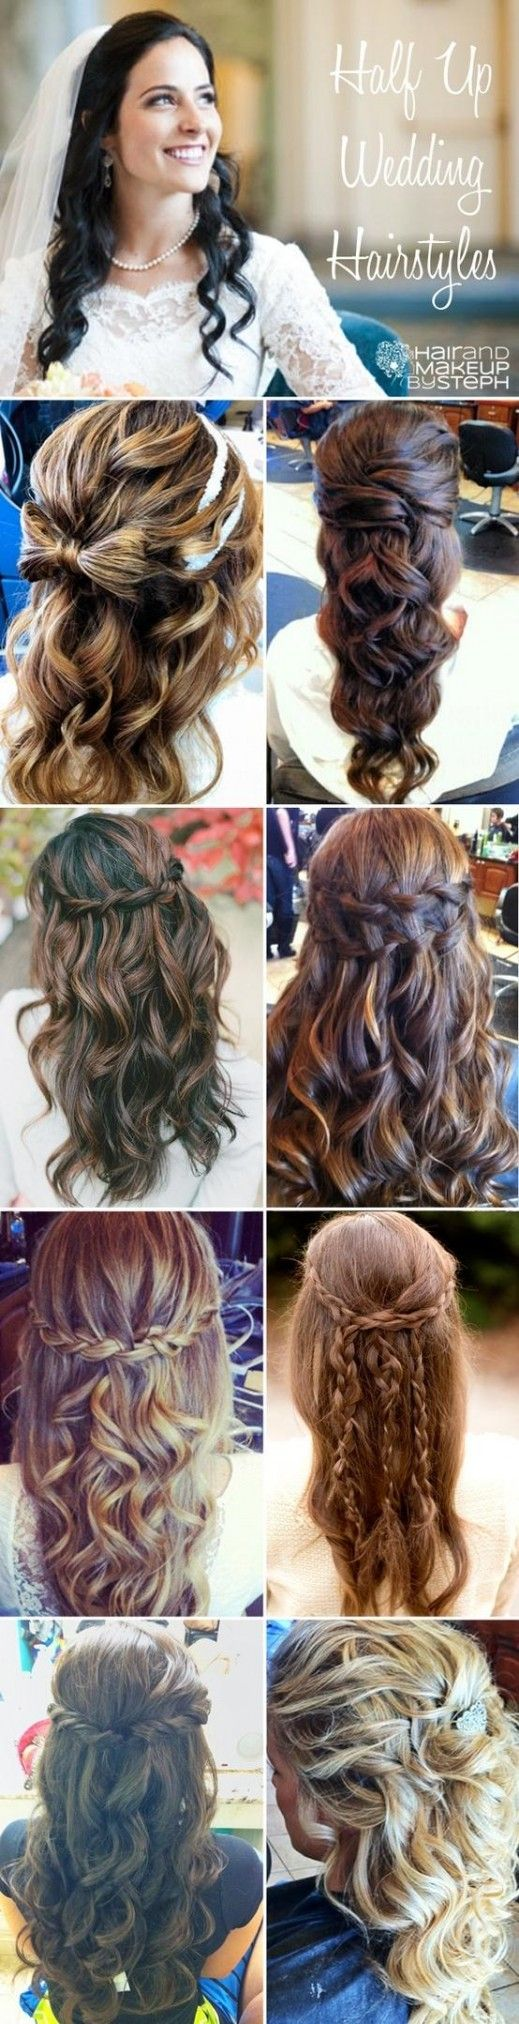 cute hairstyle ideas for little girls stylists spa and dishes